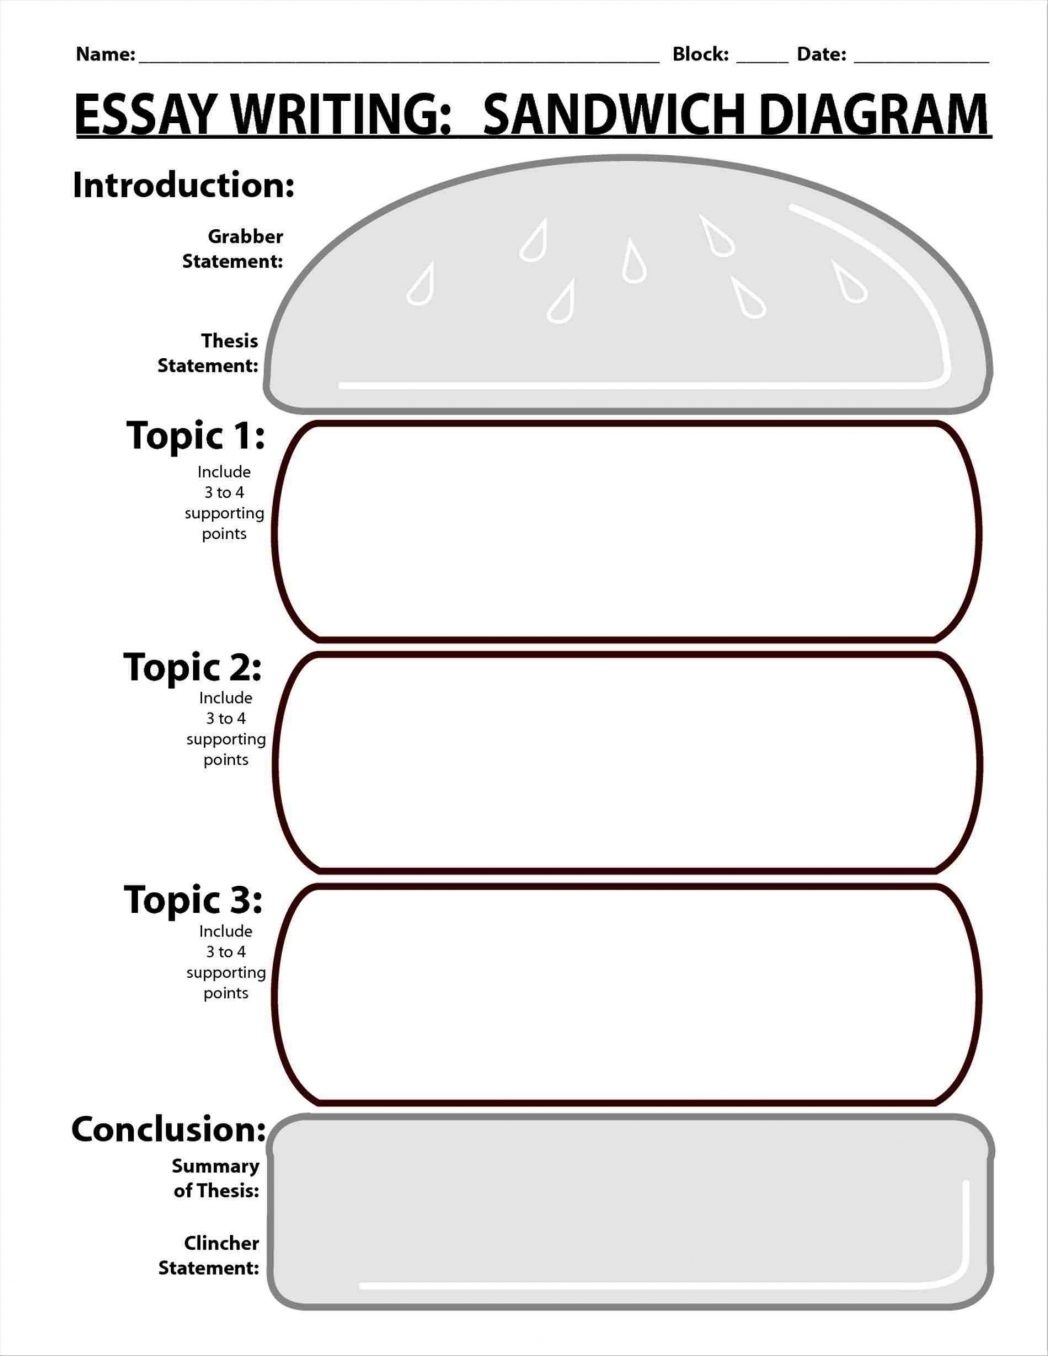 010 Paragraph Essay Graphic Organizer Hamburger Writings And Essays Inside Elementary Example Wonderful Five High School 5 Middle Pdf Organizer-hamburger Full